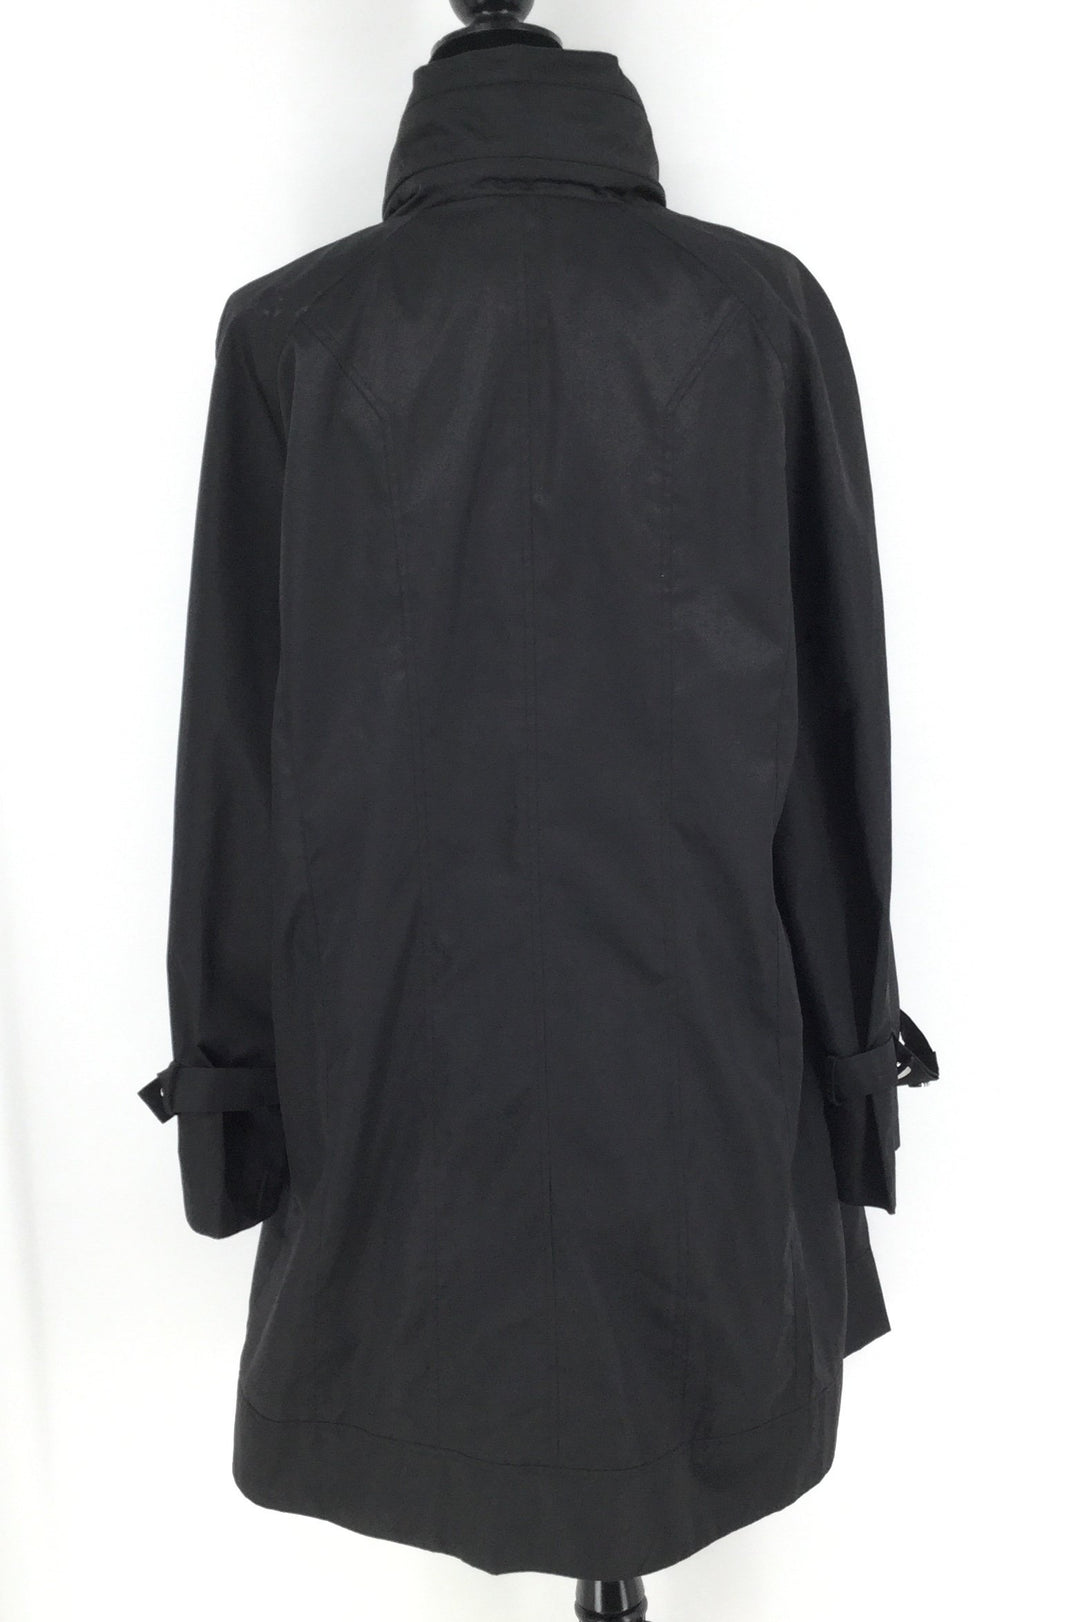 Long Black Calvin Klein Rain Jacket Size:XL - <P>LONG BLACK CALVIN KLEIN RAIN JACKET SIZE XL. SILVER DETAILING AND HOOD THAT CAN BE HIDDEN AWAY IN ZIPPERED COMPARTMENT. SILVER SNAPS HIDE THE ZIPPER, BUT THERE IS A SNAP MISSING AT THE TOP OF THE COAT. IN GOOD USED CONDITION AND COMES WITH A SMALL BAG SO COAT IS ABLE TO BE FOLDED UP AND STORED EASIER.</P>